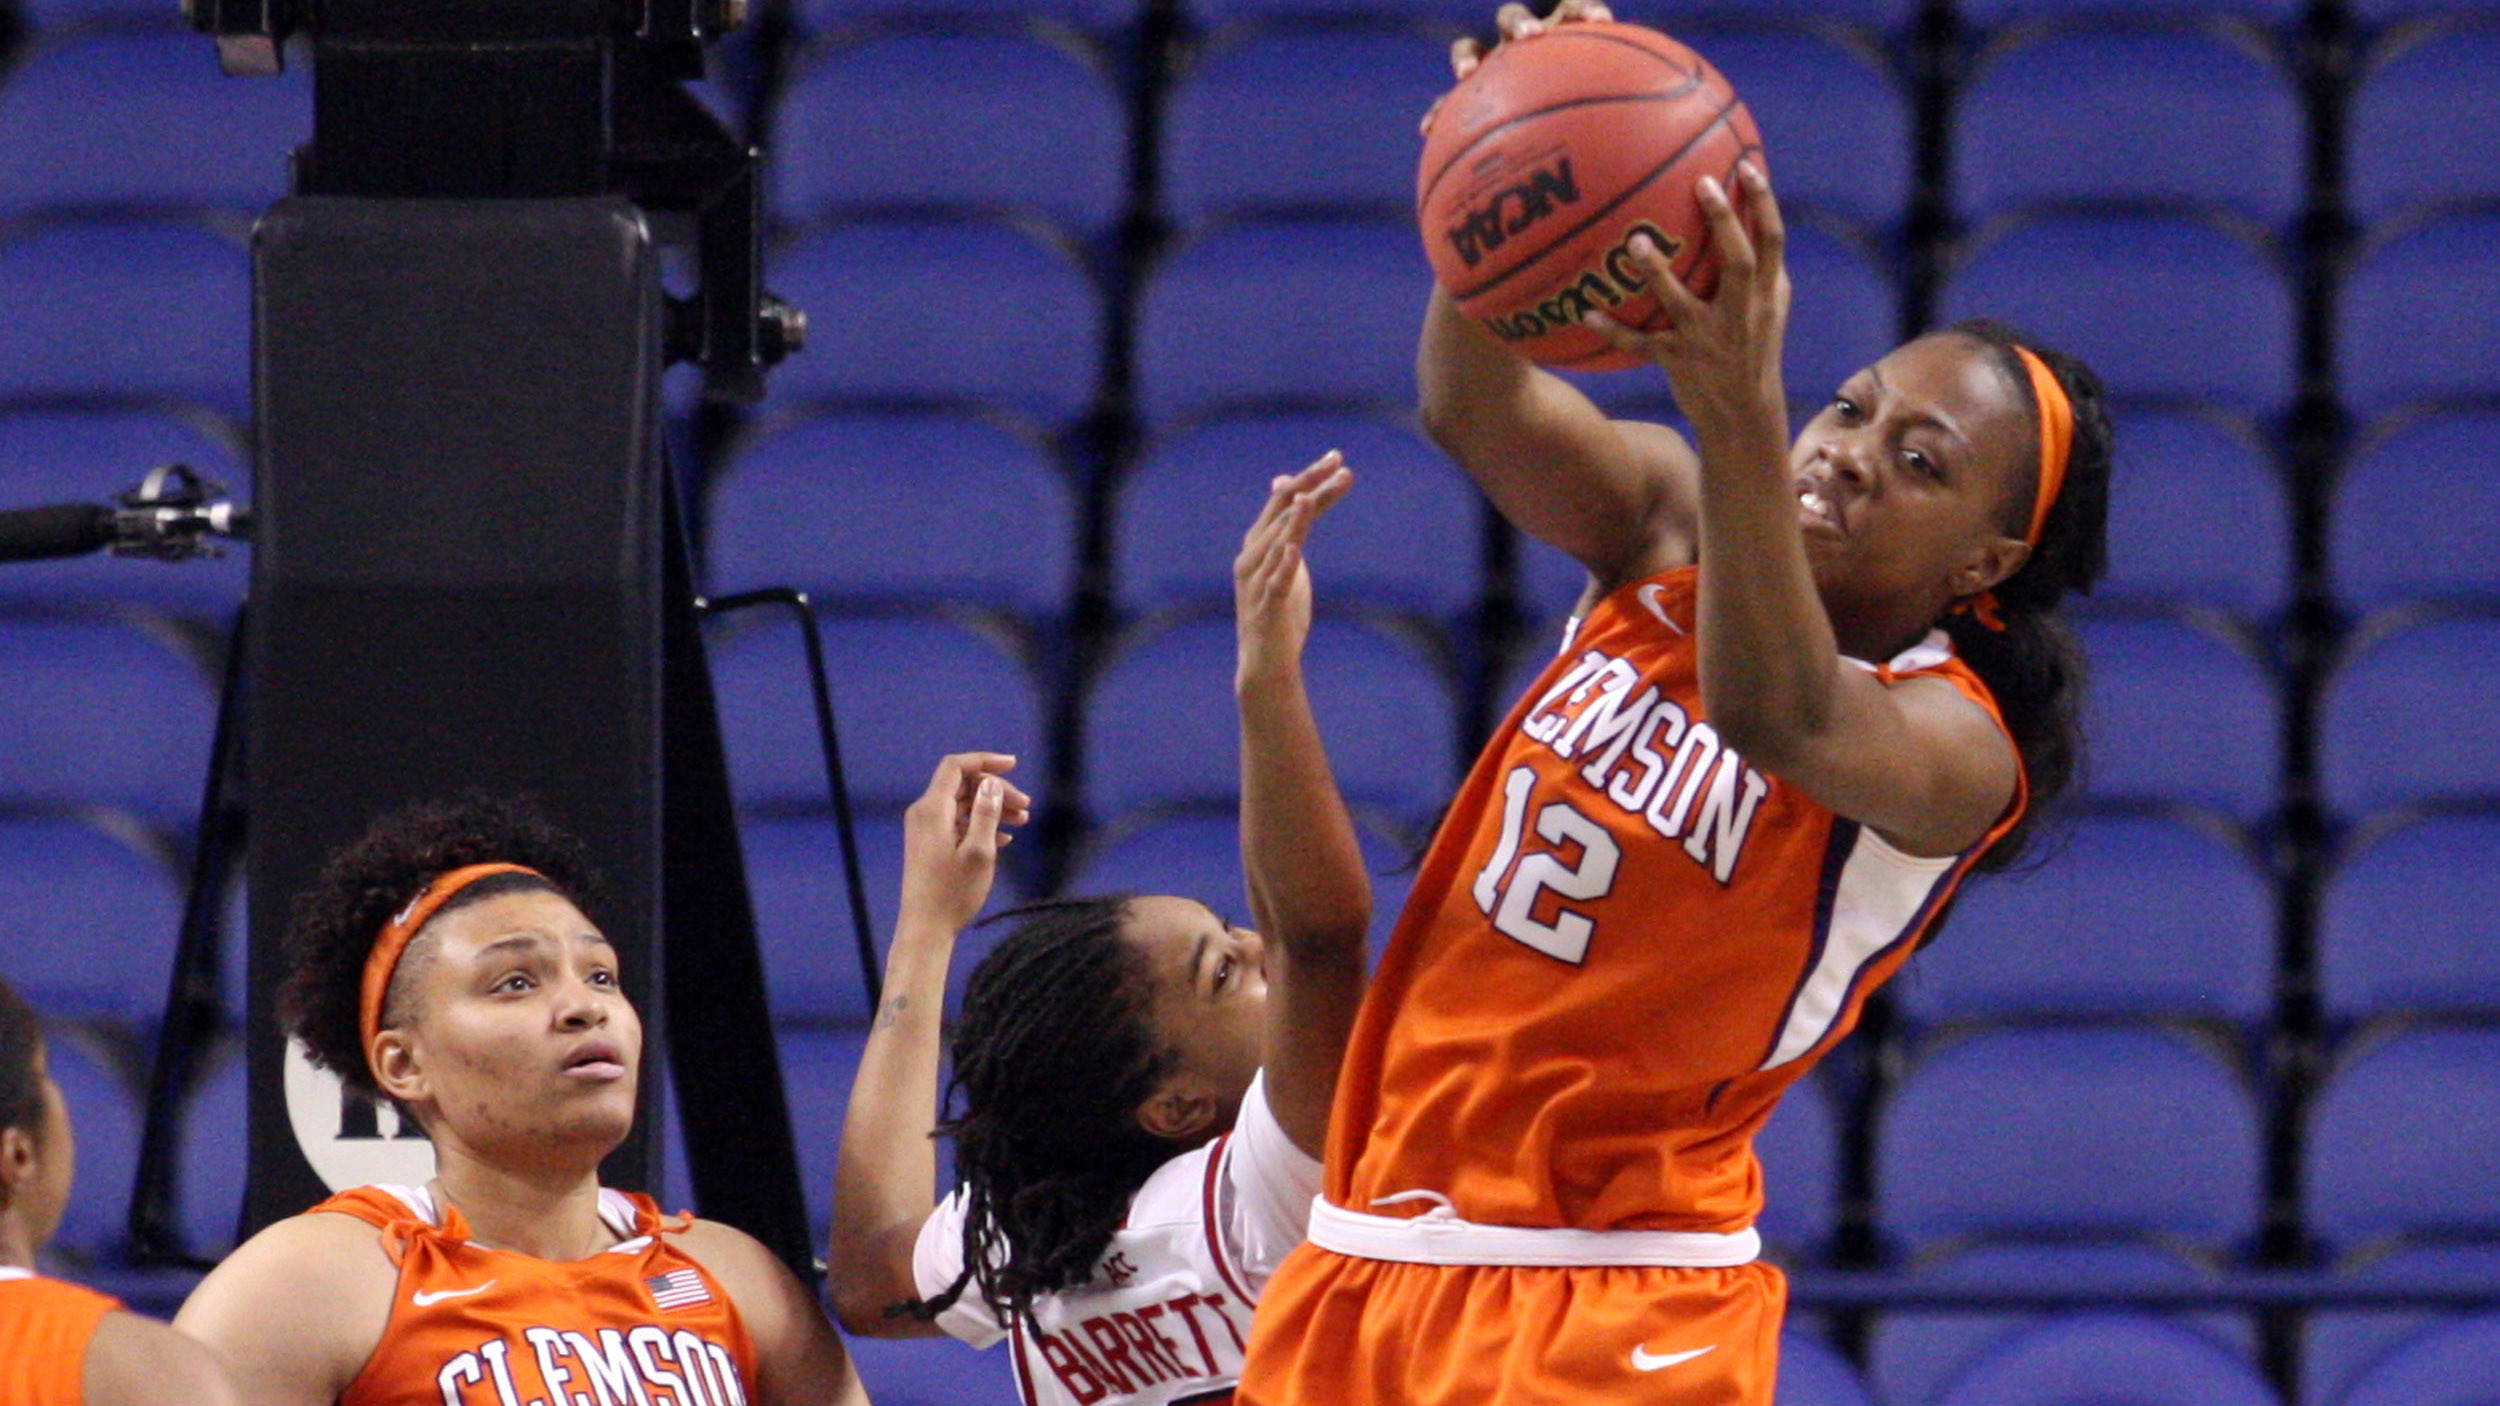 EXCLUSIVE: Lady Tigers wear down after valiant effort